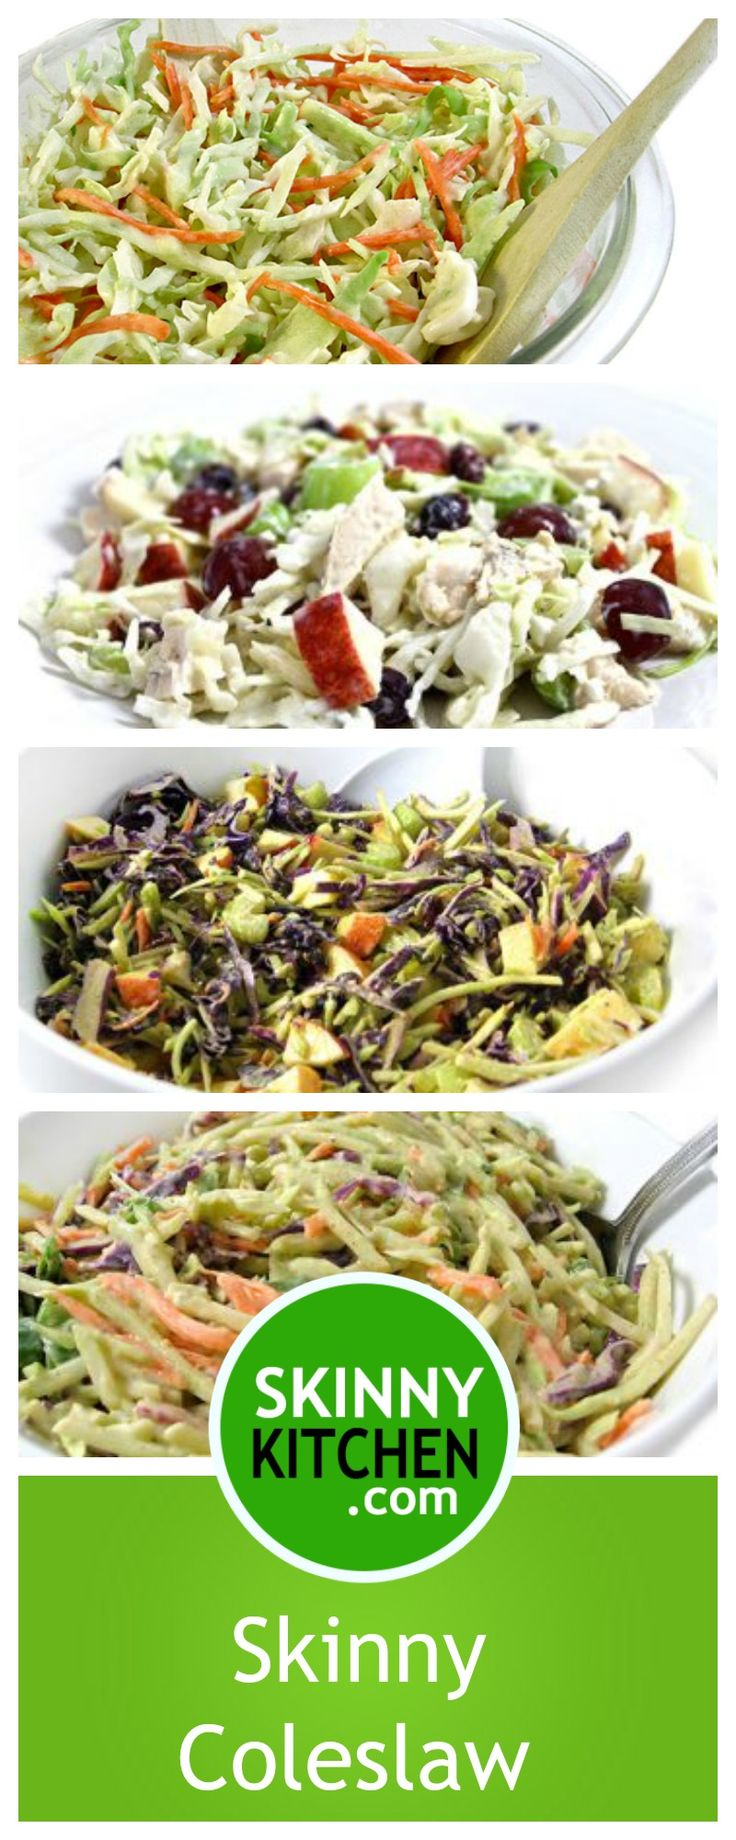 6 Wonderful, Skinny Coleslaw Recipes. Some use cabbage and others use broccoli slaw. All yummy! #coleslaw #glutenfree #smartpoints http://www.skinnykitchen.com/recipes/6-wonderful-skinny-coleslaw-recipes/